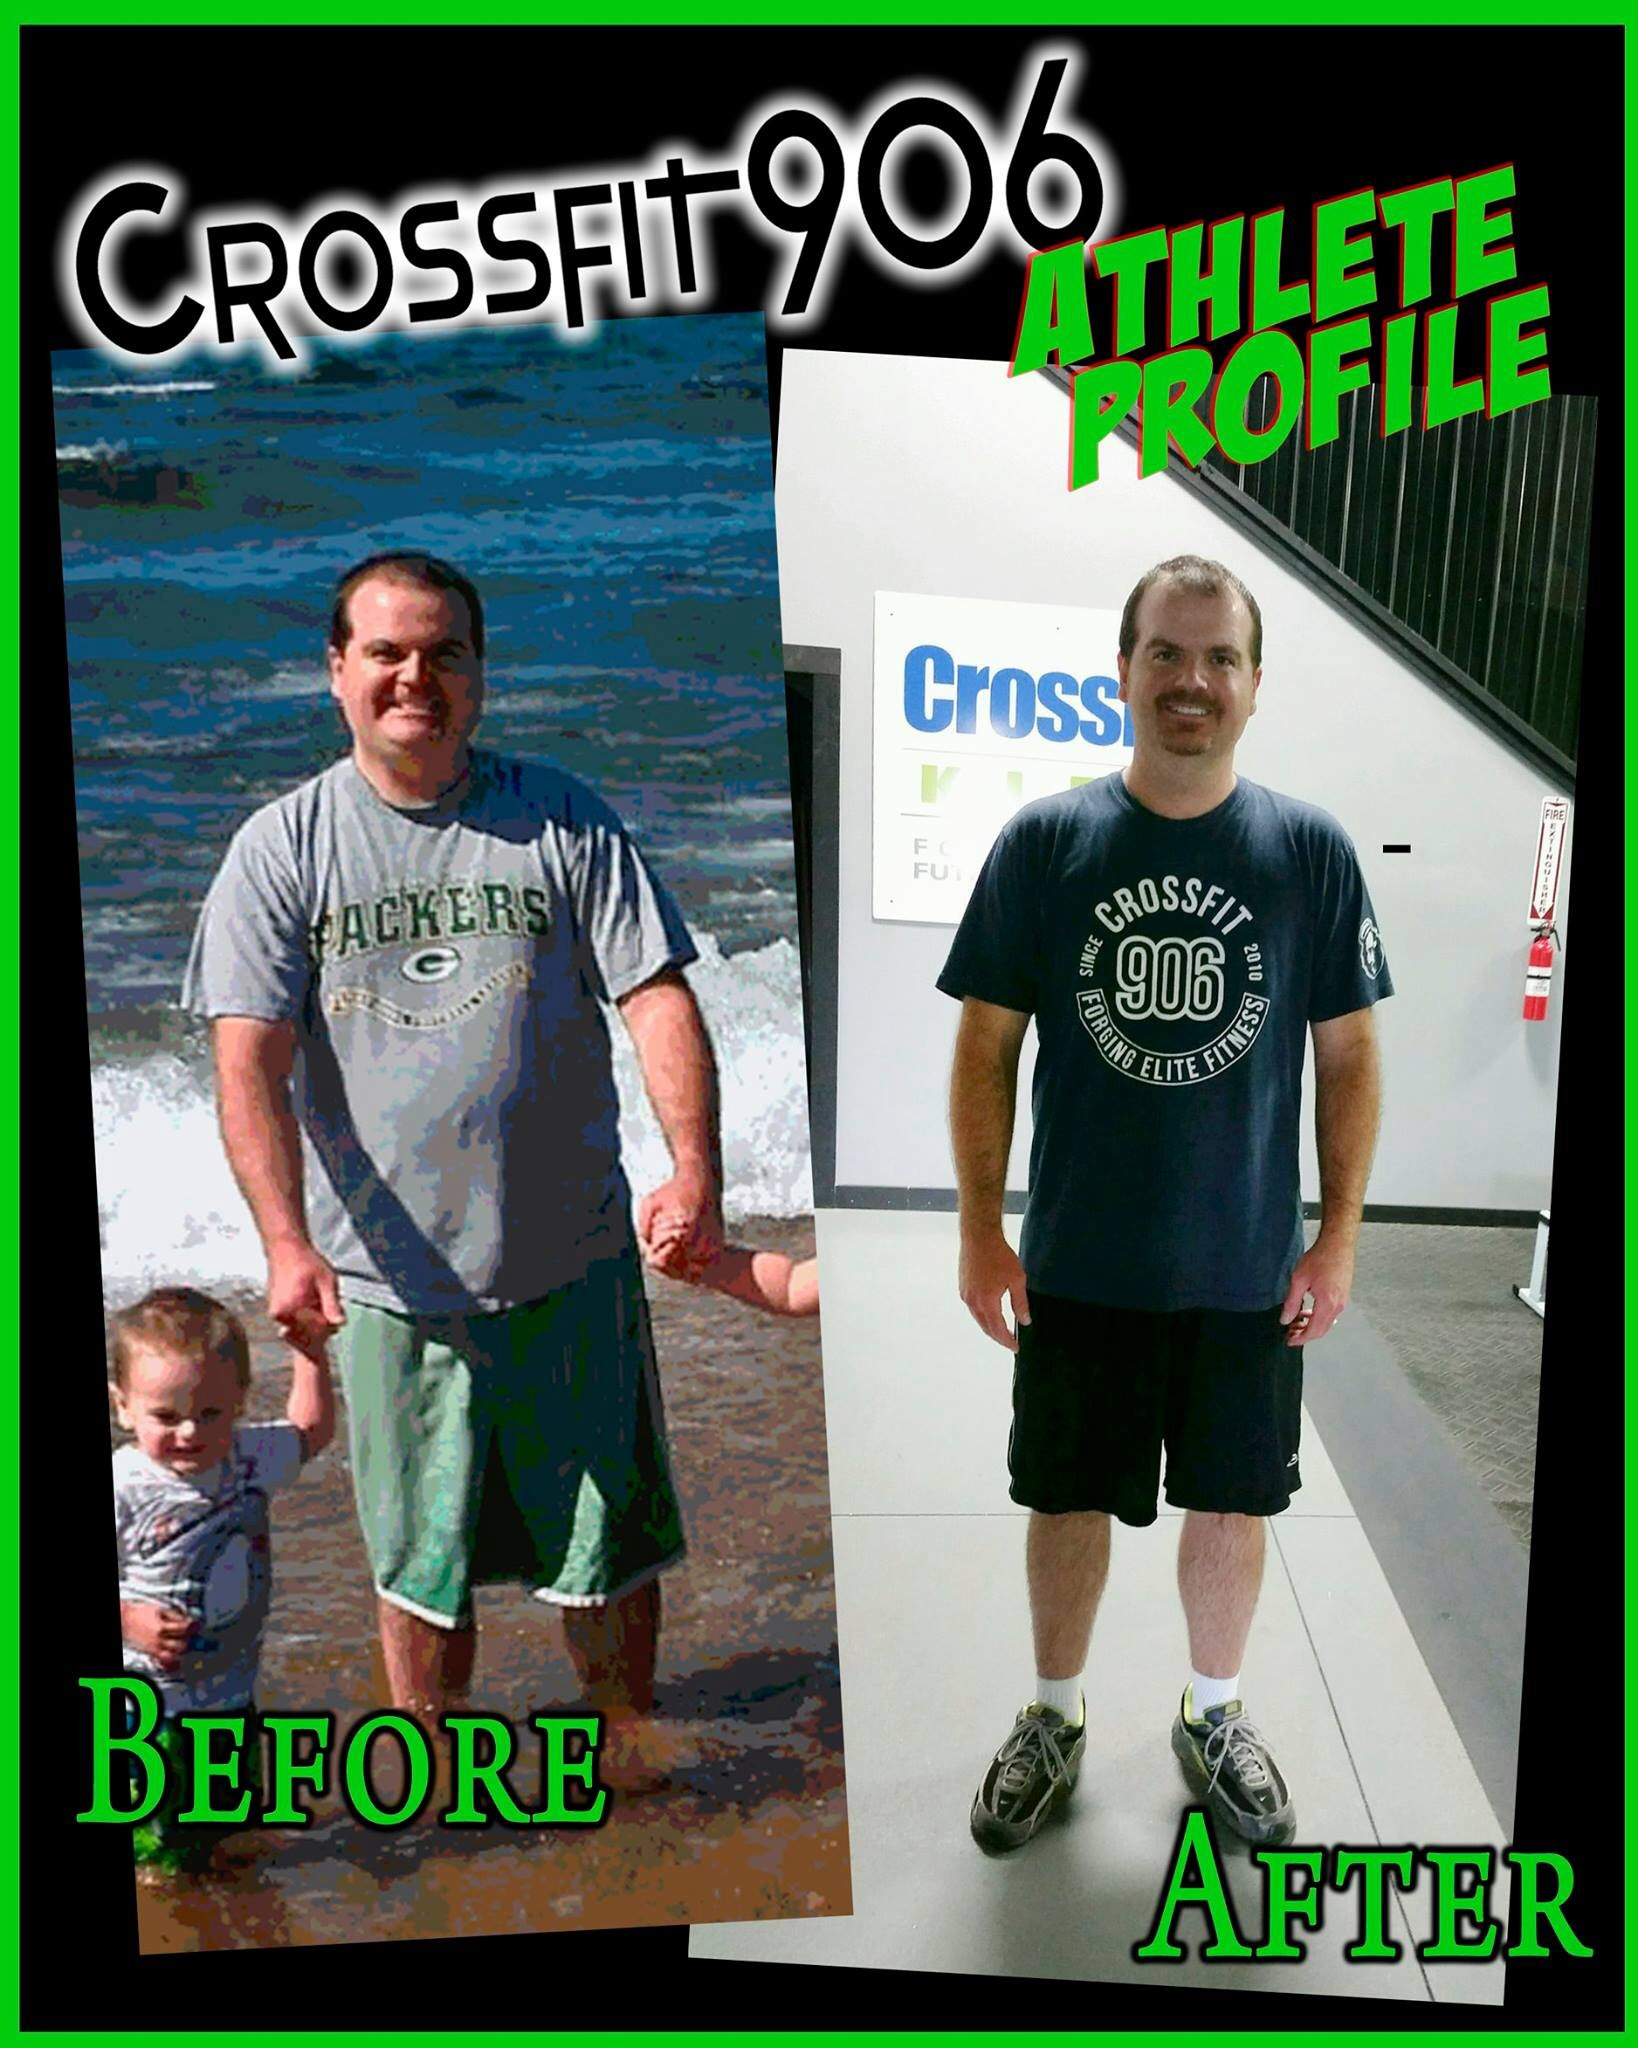 Crossfit Results Women Weight Loss results - crossfit 906